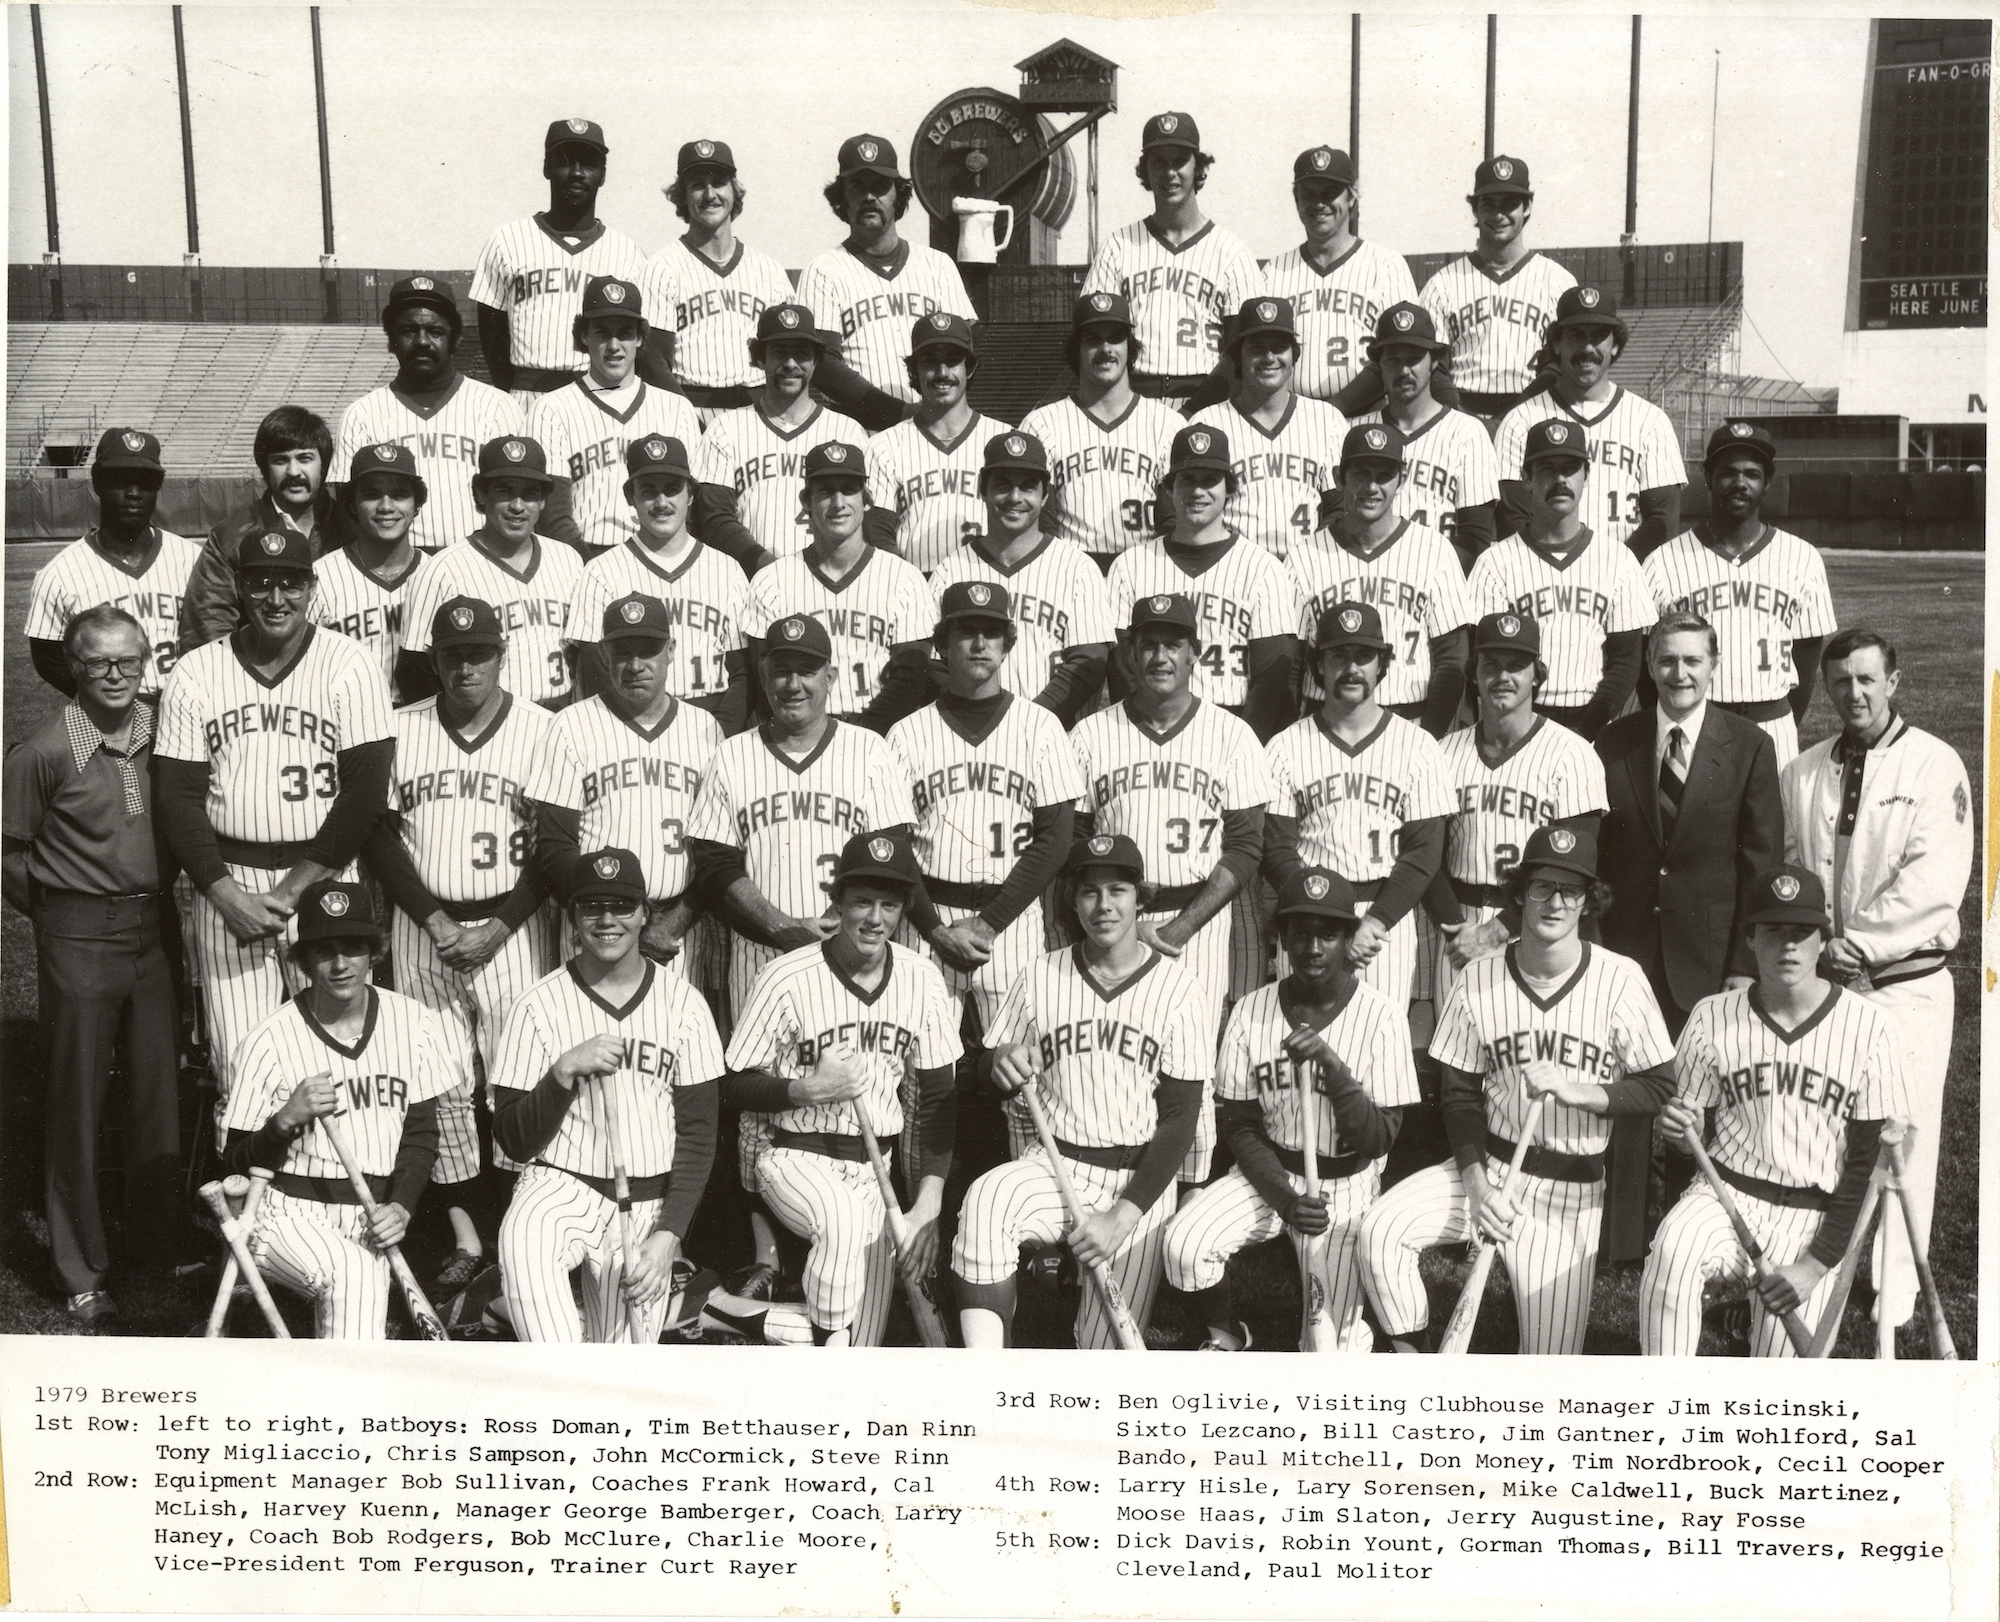 <table class=&quot;lightbox&quot;><tr><td colspan=2 class=&quot;lightbox-title&quot;>1979 Milwaukee Brewers</td></tr><tr><td colspan=2 class=&quot;lightbox-caption&quot;>Team photograph of the 1979 Milwaukee Brewers. During this season they accumulated 95 wins, 66 losses, and finished second in the American League East. </td></tr><tr><td colspan=2 class=&quot;lightbox-spacer&quot;></td></tr><tr class=&quot;lightbox-detail&quot;><td class=&quot;cell-title&quot;>Source: </td><td class=&quot;cell-value&quot;>From the Milwaukee County  Historical Society.</td></tr><tr class=&quot;filler-row&quot;><td colspan=2>&nbsp;</td></tr></table>